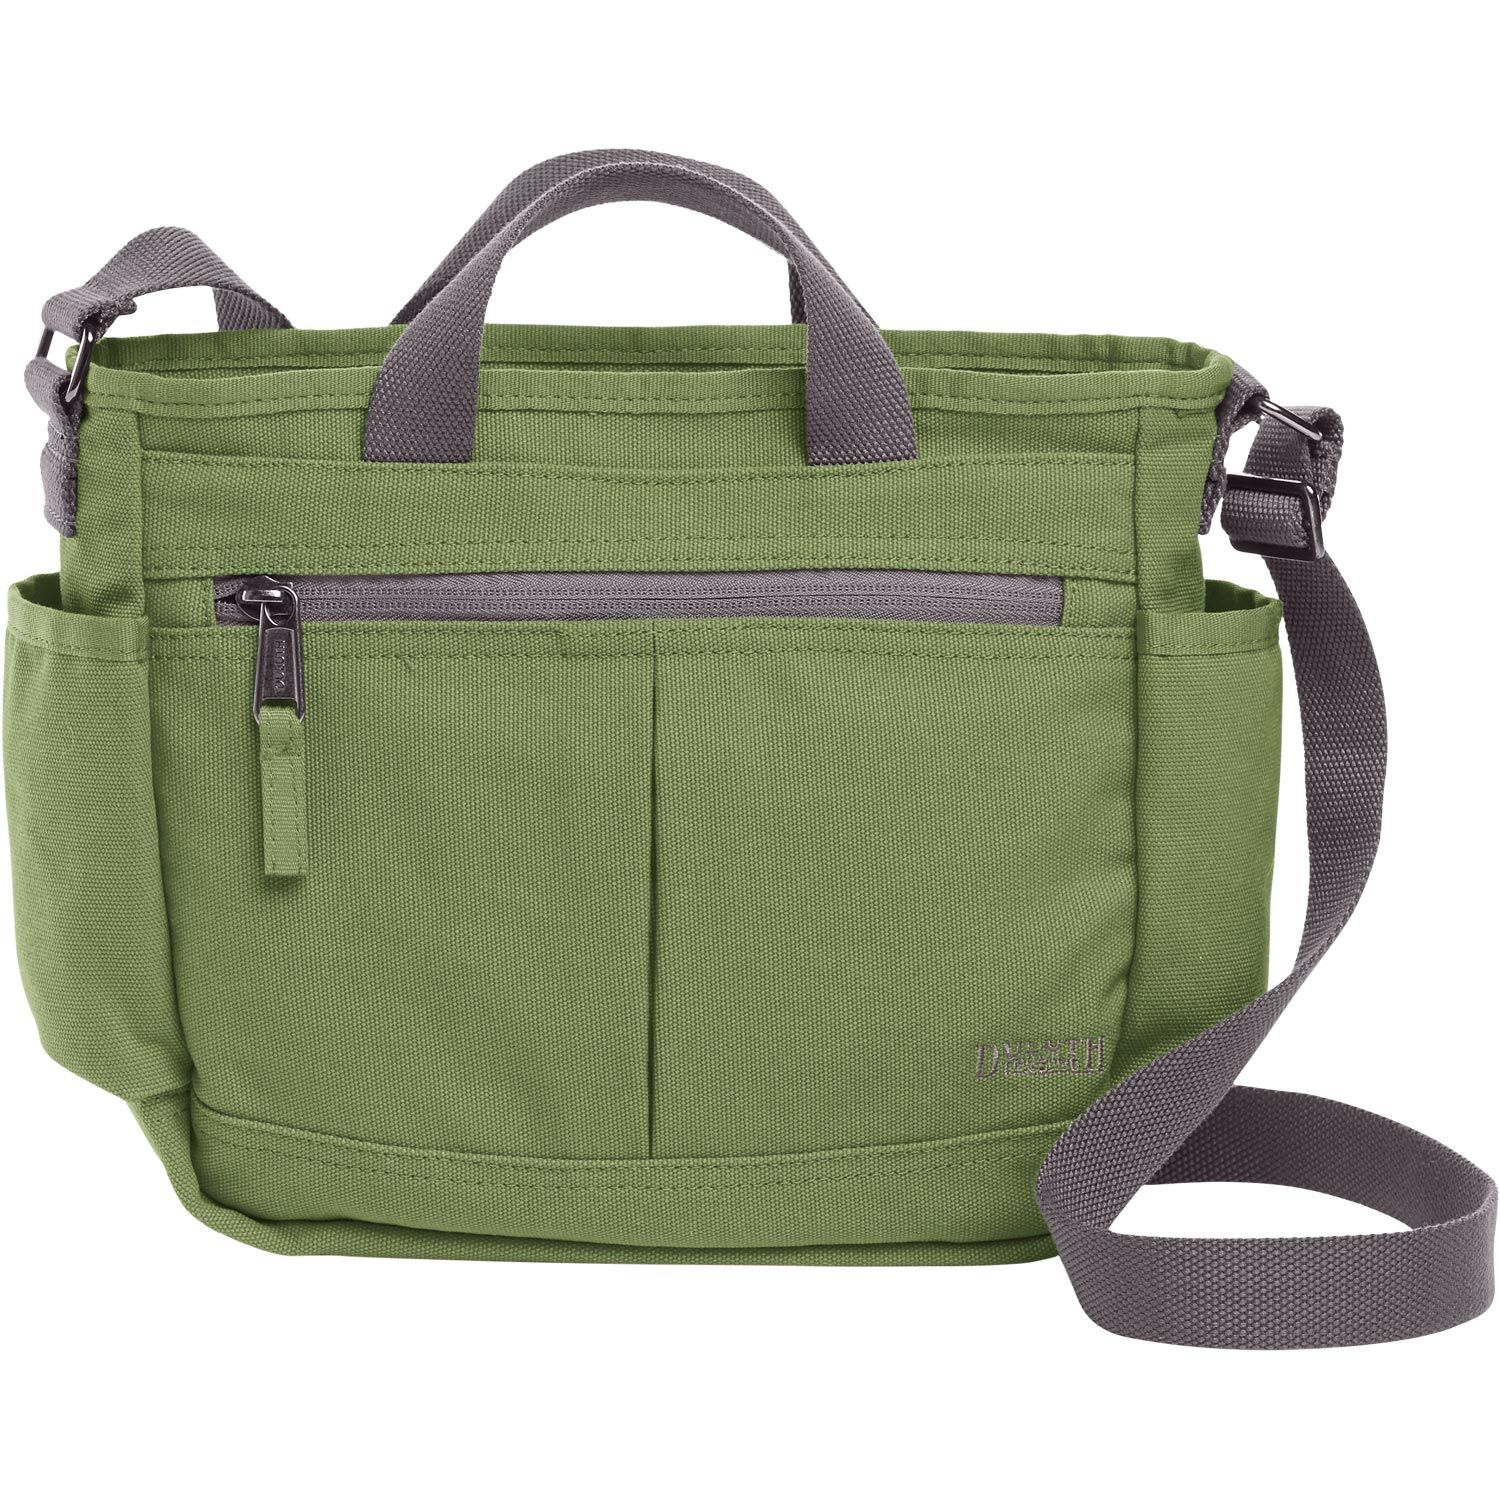 35e6994ad Women's Canvas Travel Sling Bag | Bags sling | Bags, Canvas, Duluth ...